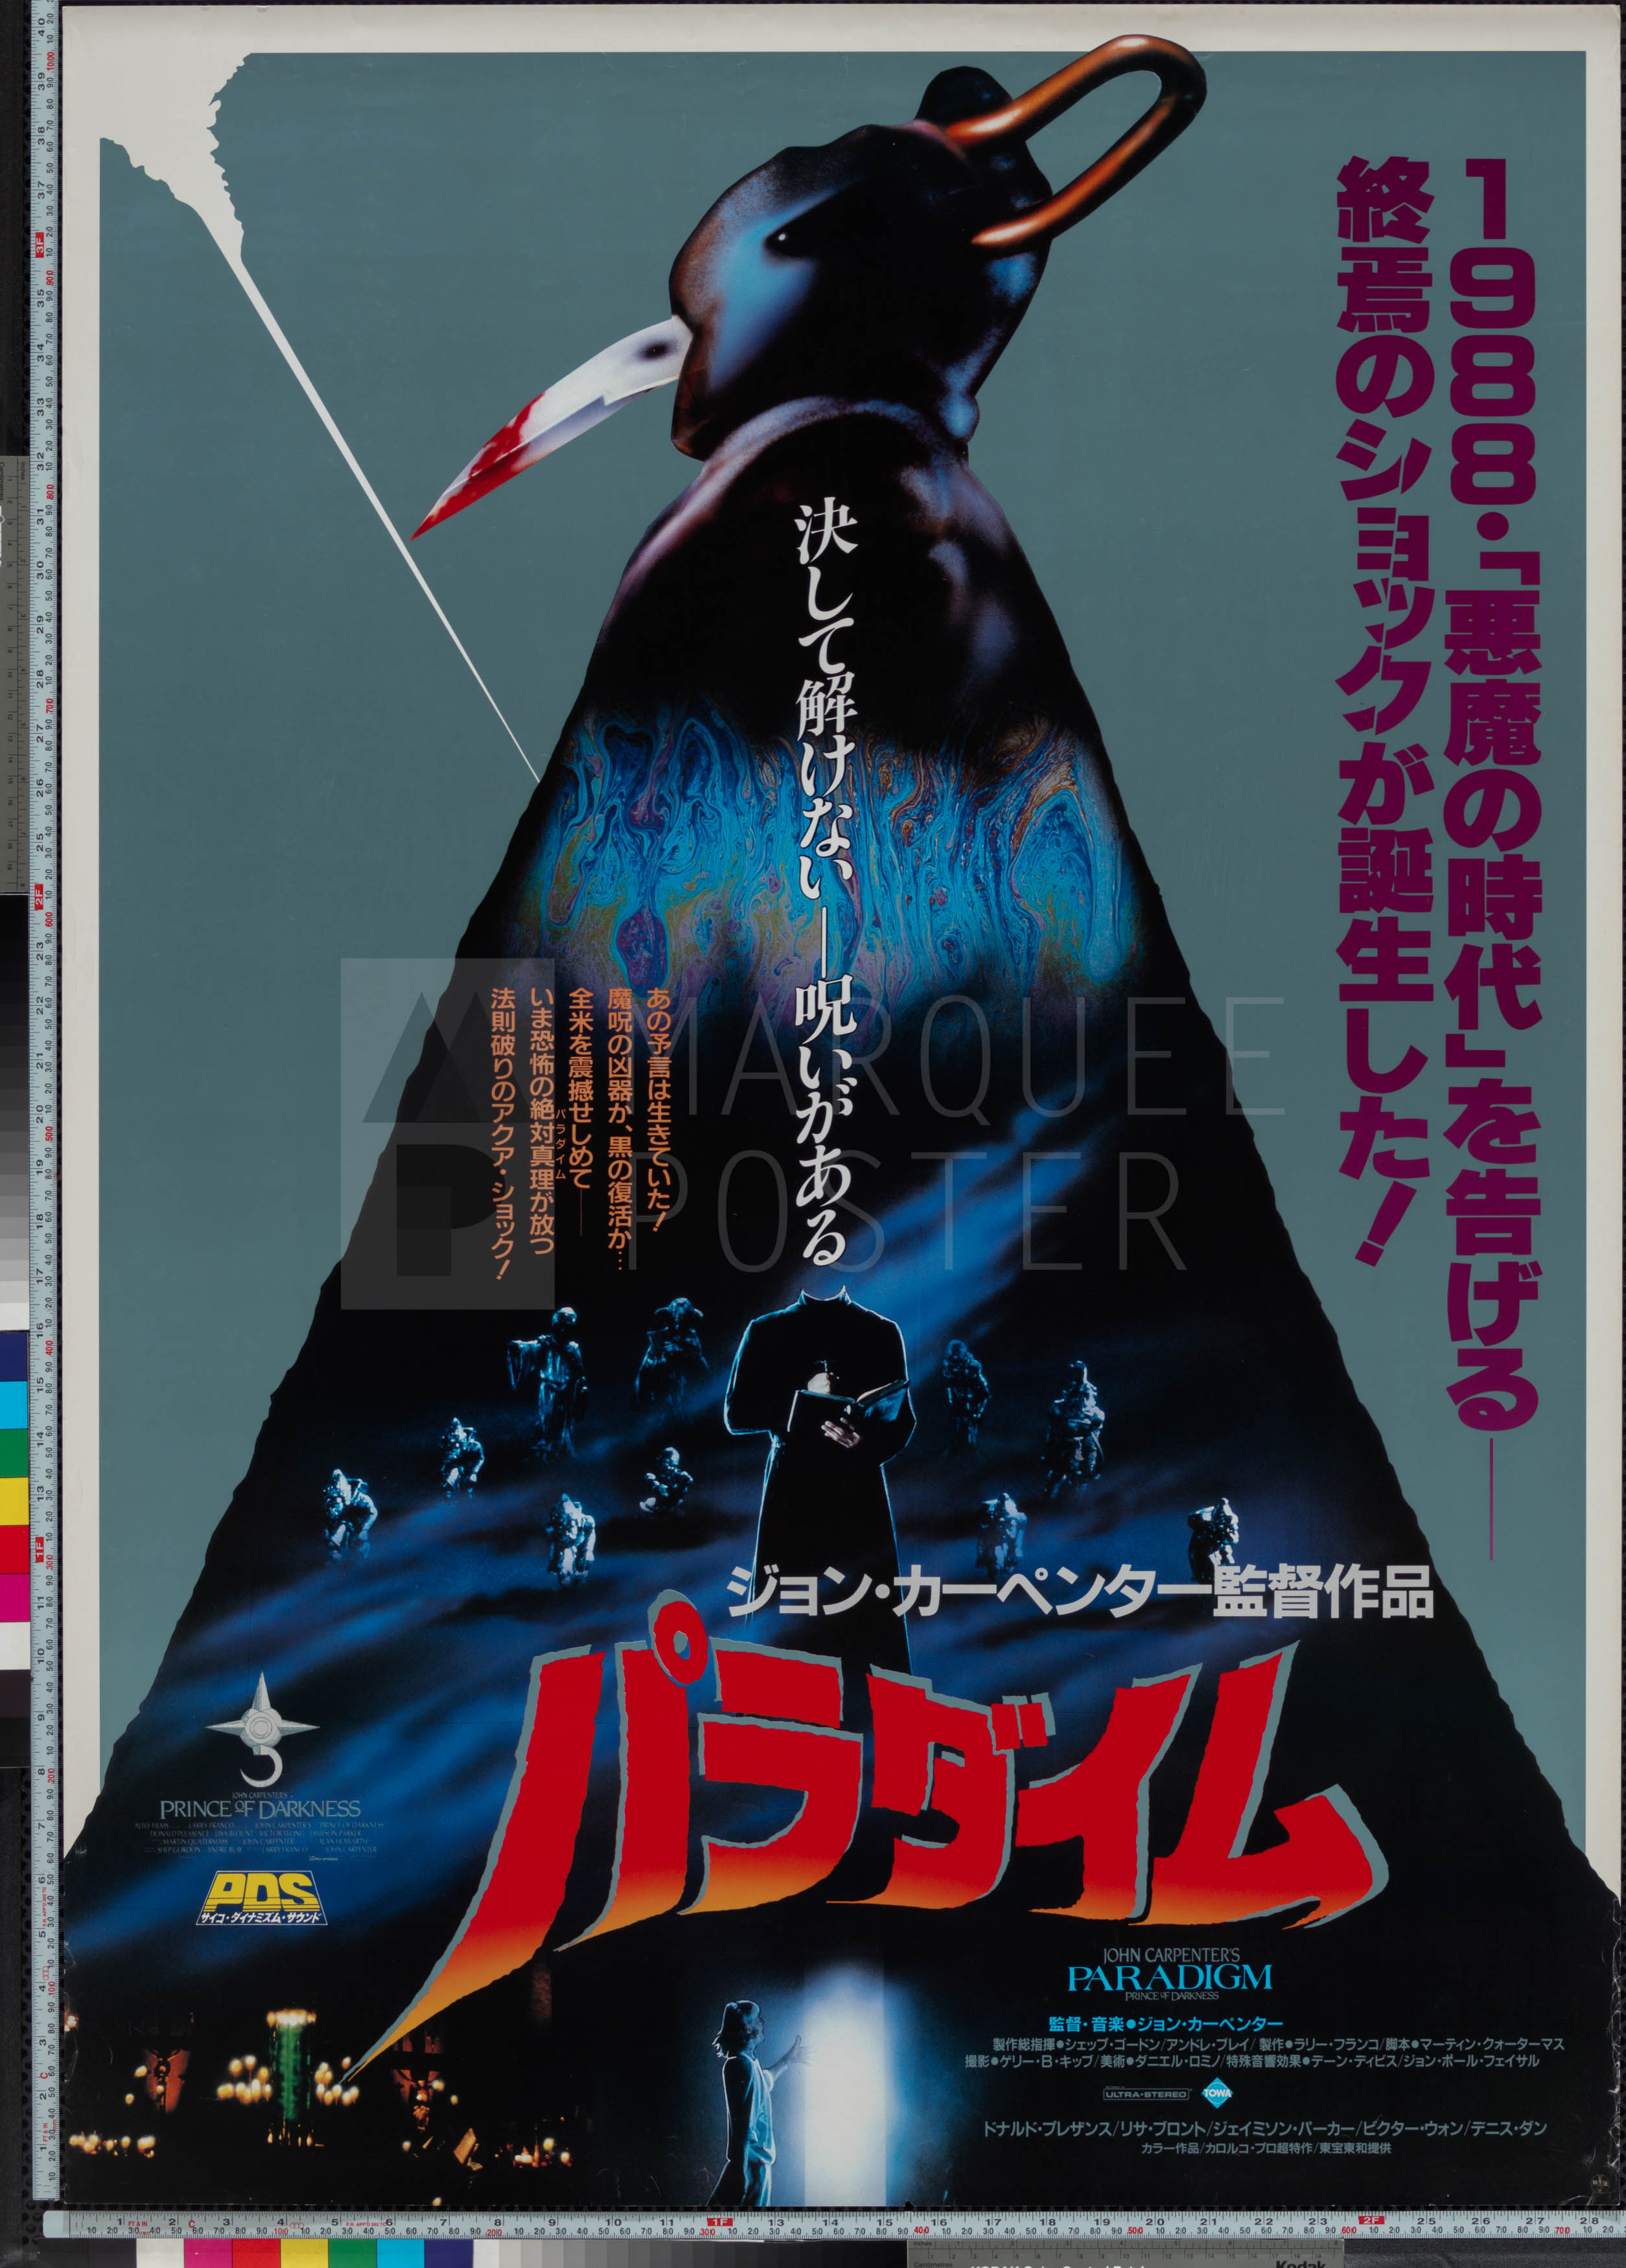 14-prince-of-darkness-japanese-b1-1987-02